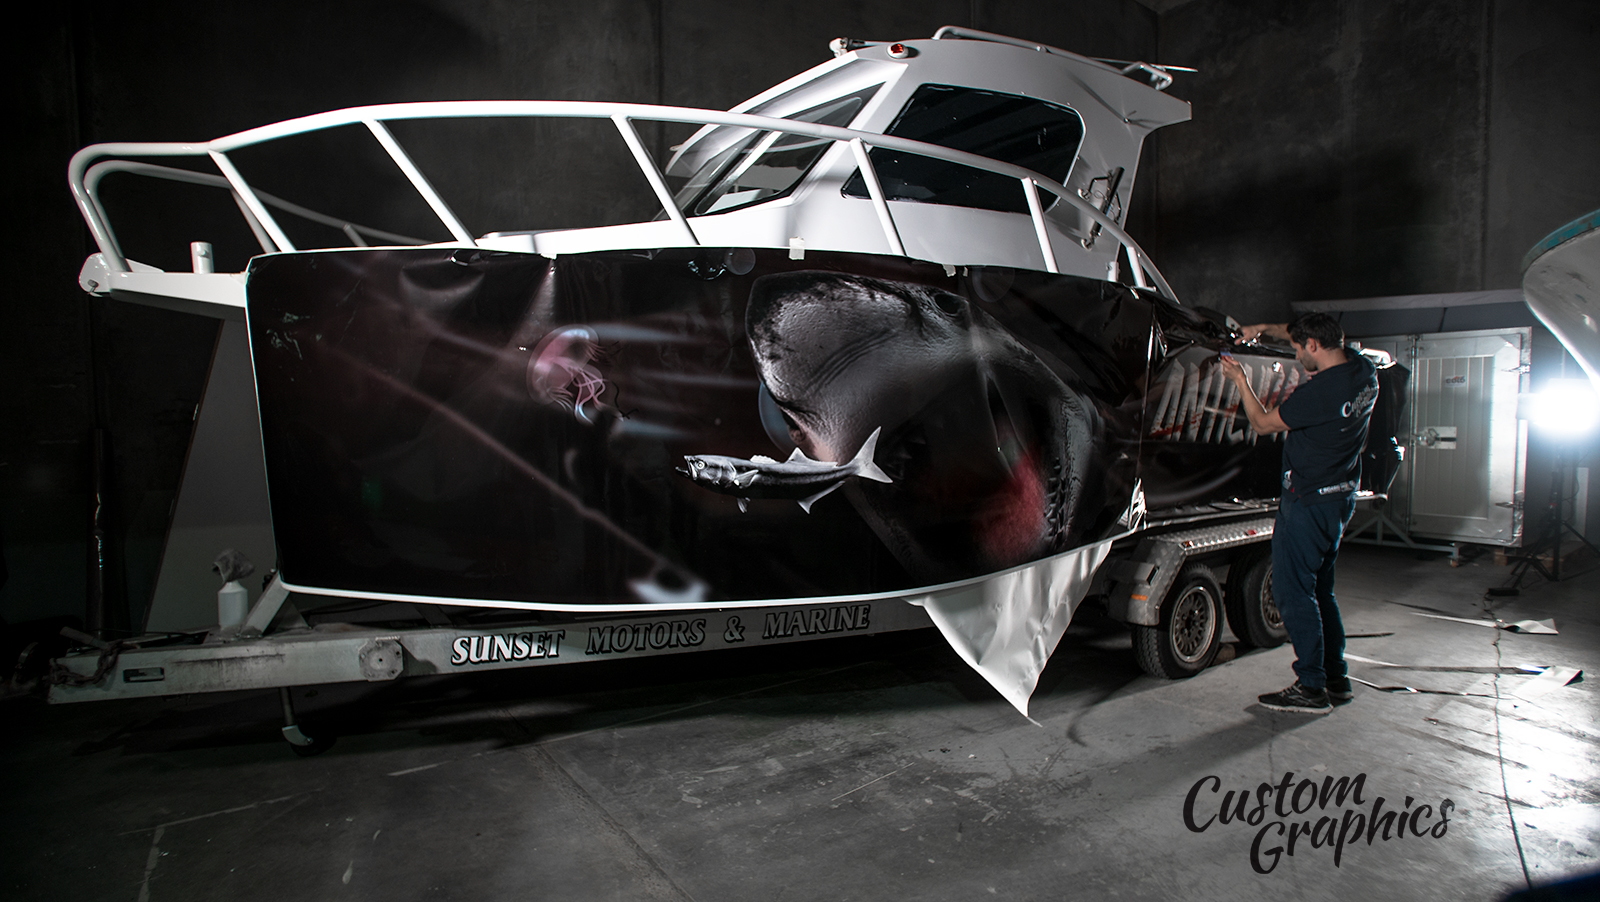 Boat design and wrap.